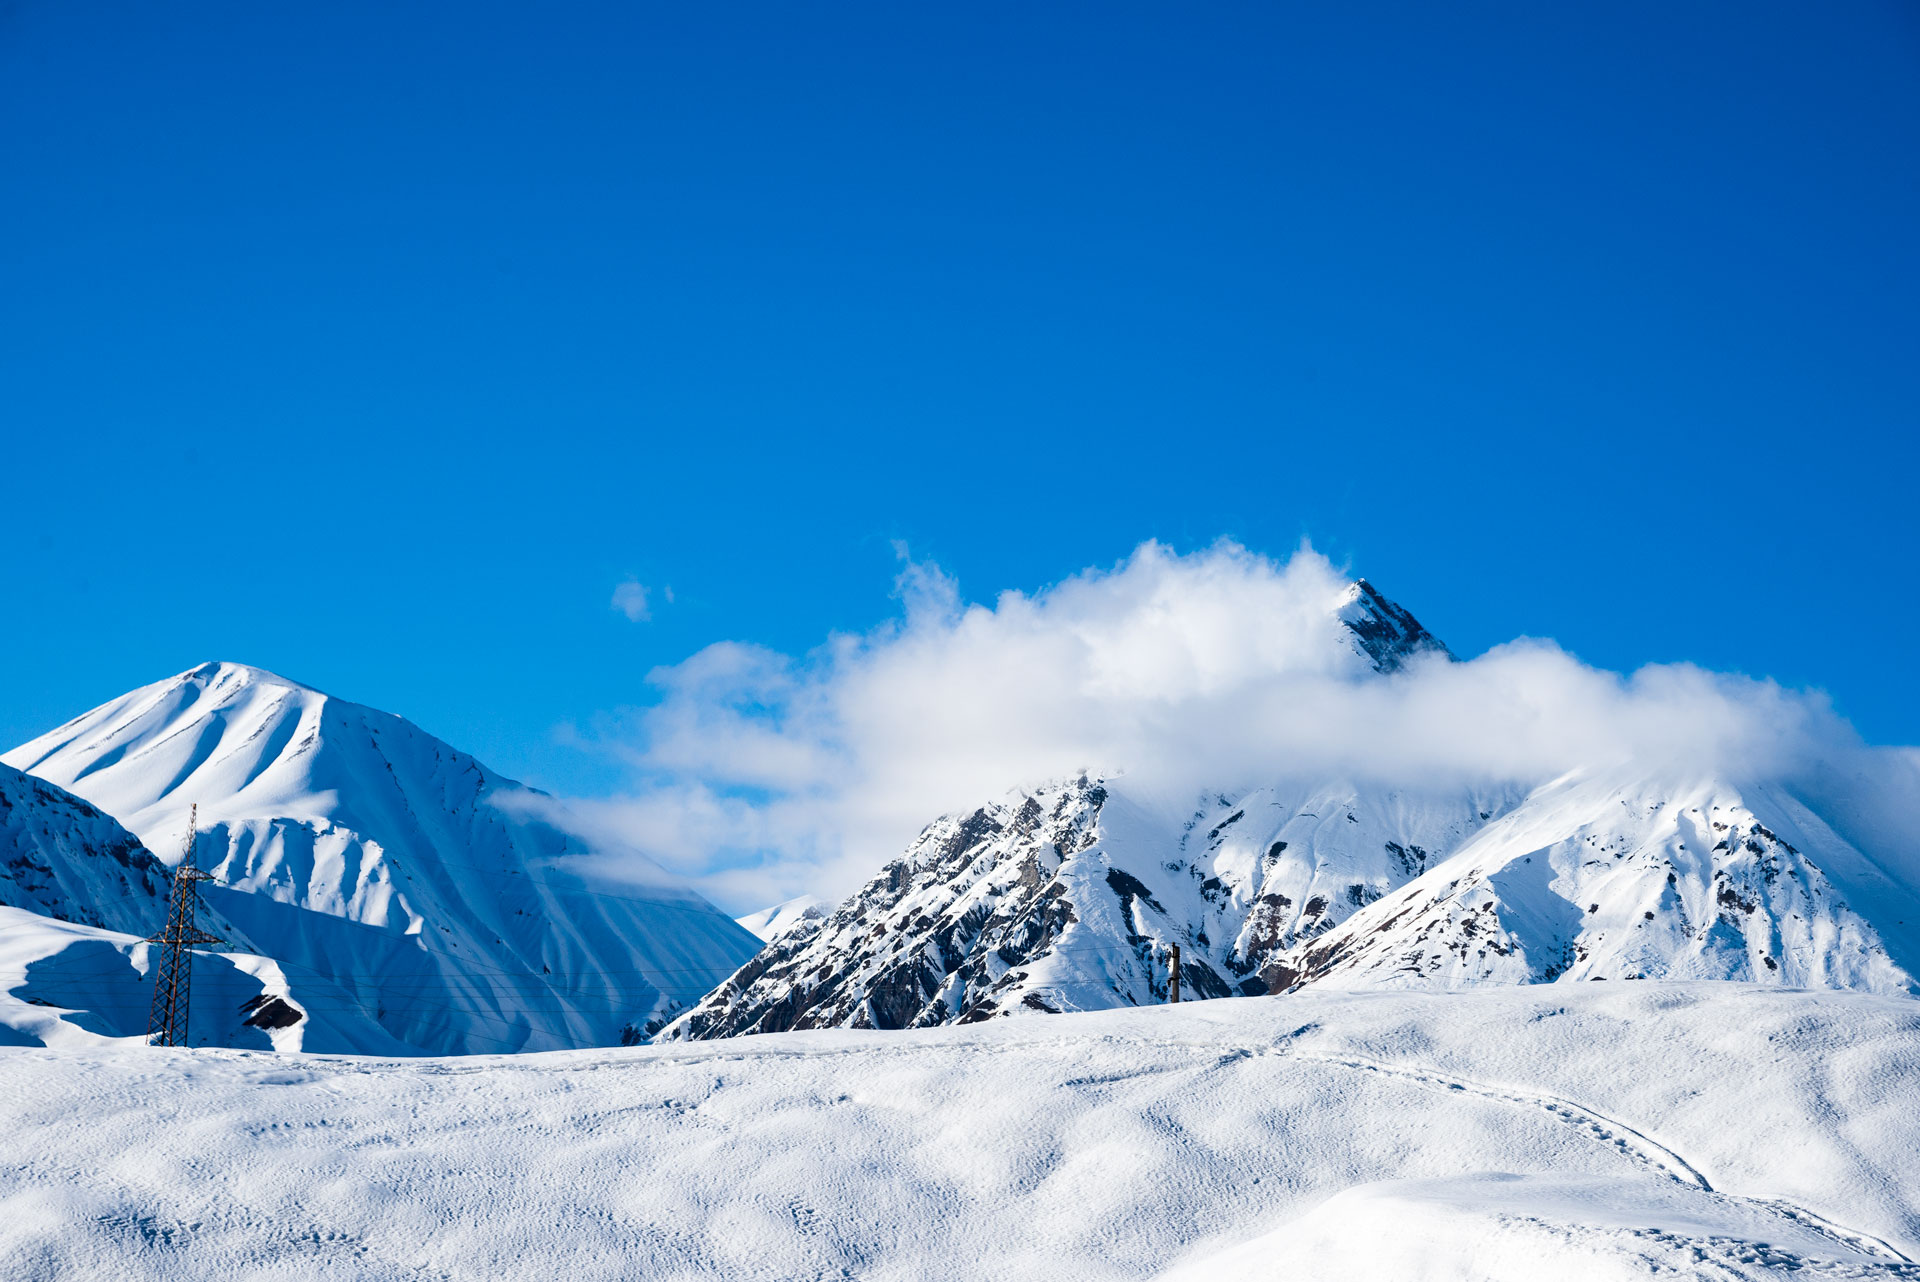 One of the most photogenic peaks we saw in Gudauri.